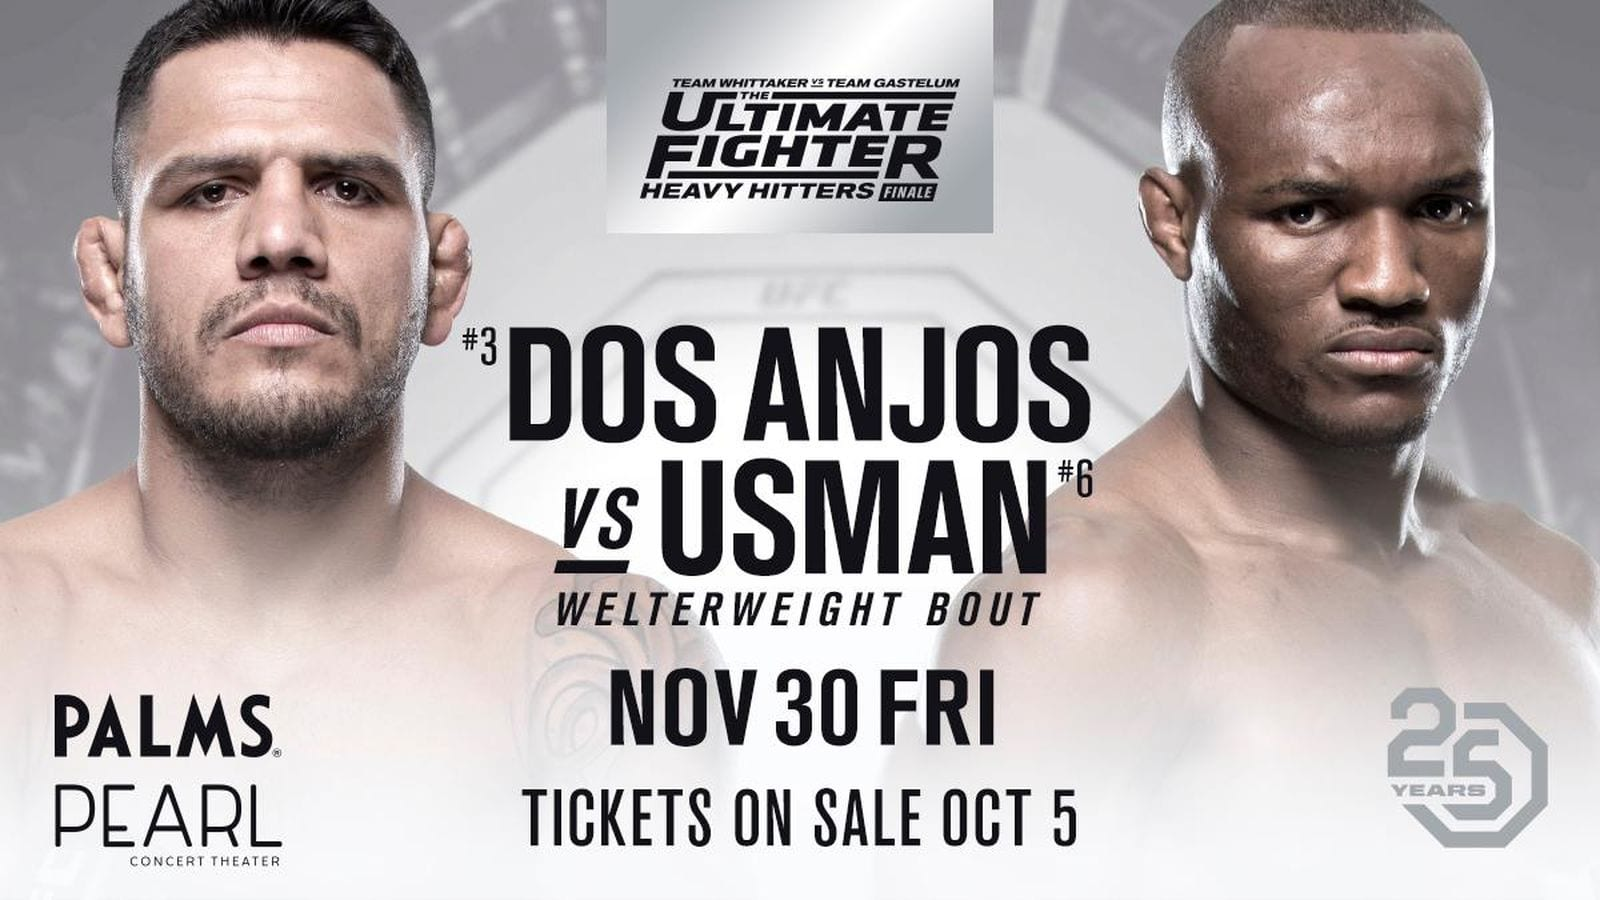 The Ultimate Fighter 28: Heavy Hitters Finale